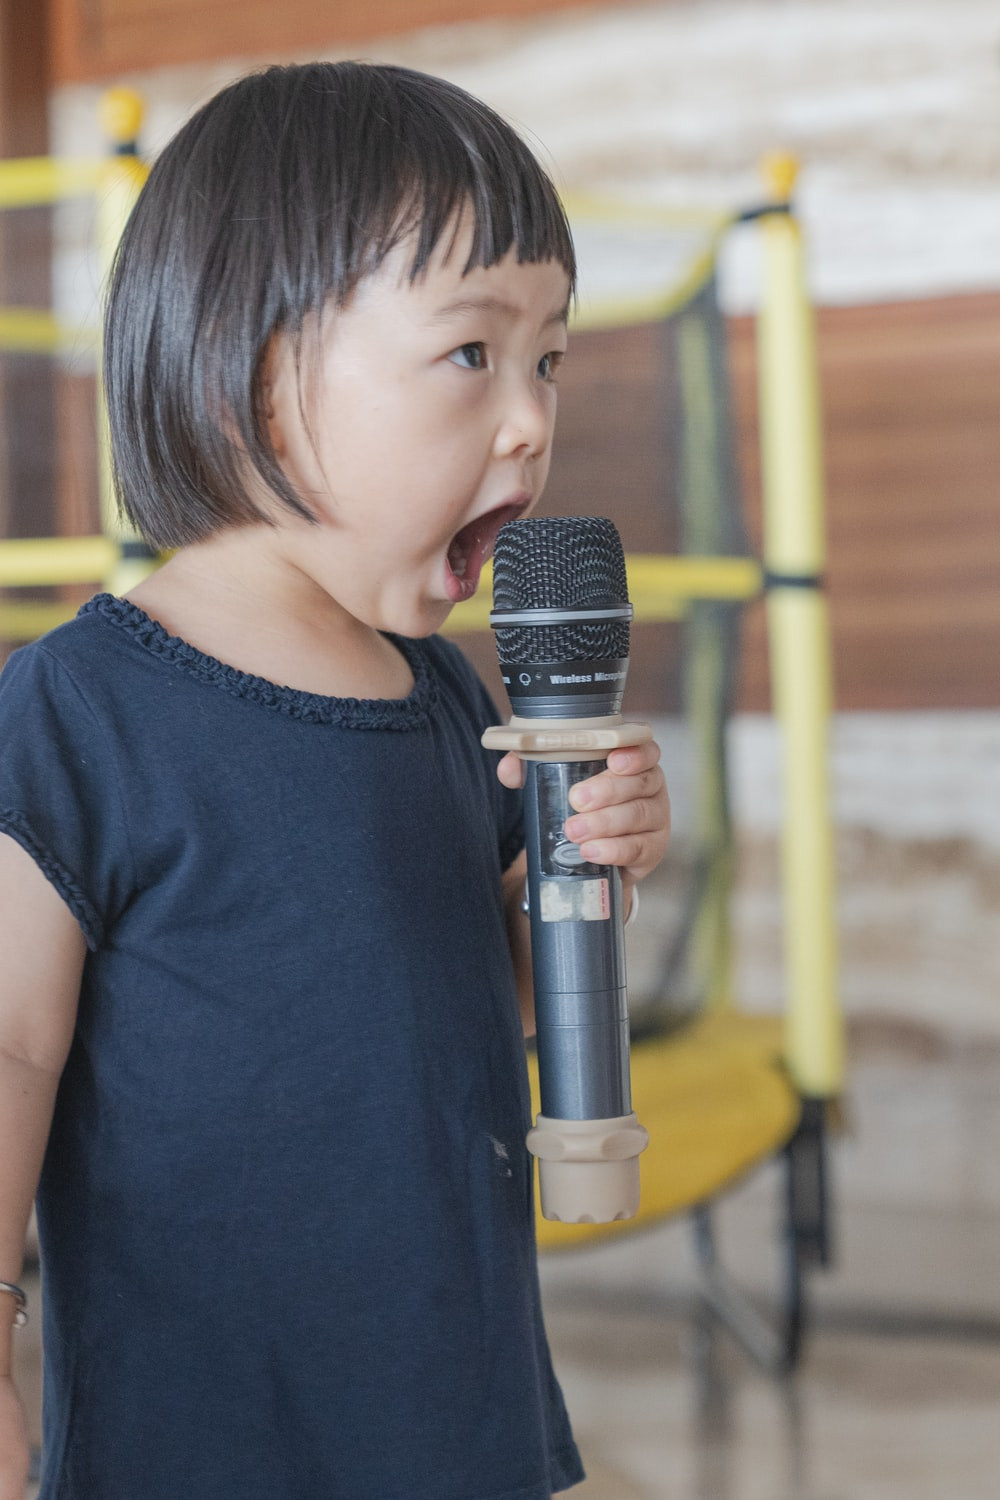 girl in black blouse olding microphone